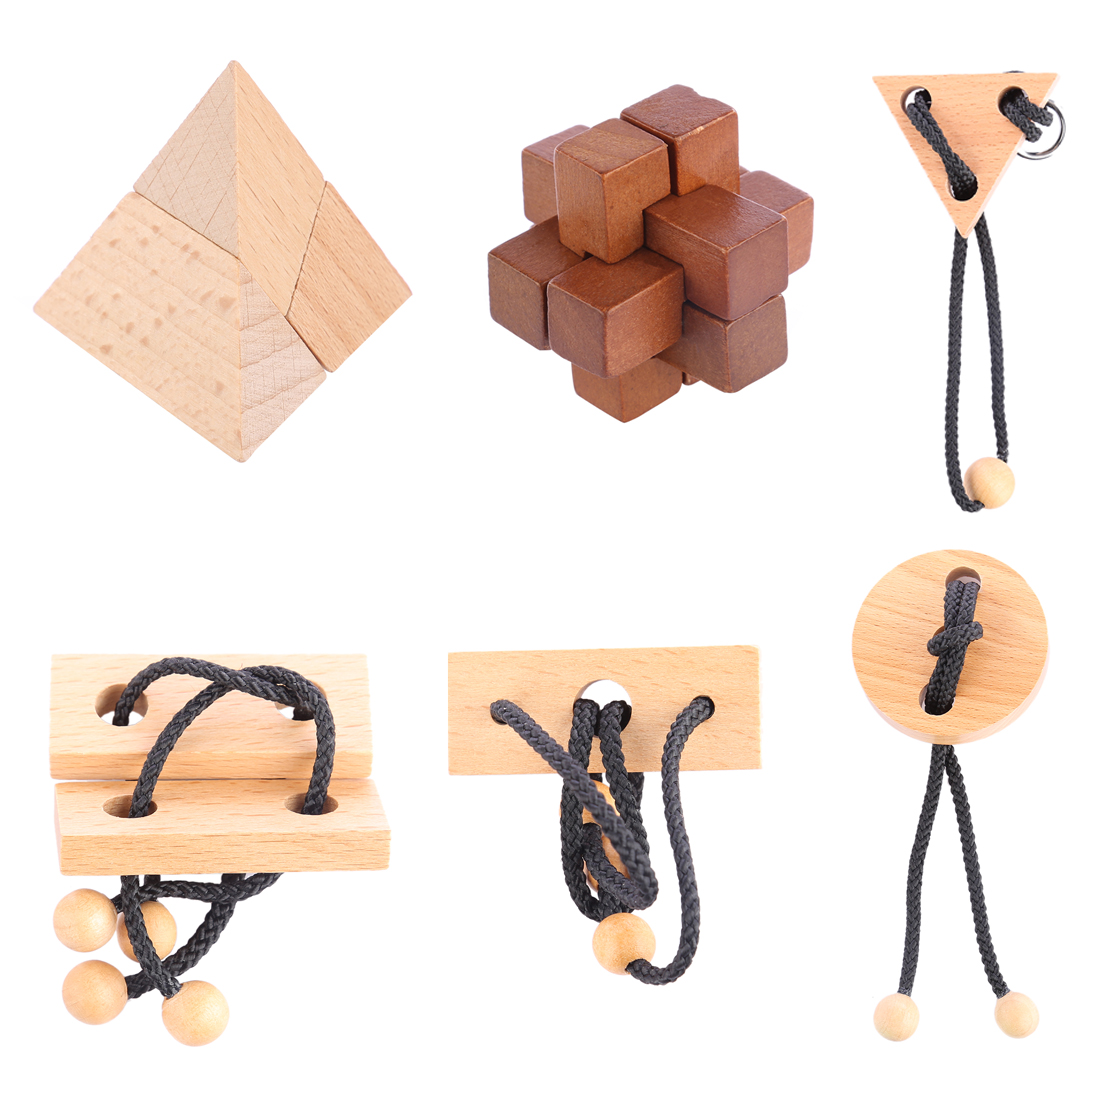 UTOYSLAND 6pcs/set Puzzle Toy Wooden Kong Ming Lock Rope Puzzle Set Brain Teaser Children Development Educational Toy classical iq brain teaser puzzle toy 3 wooden sticks kong ming lu ban lock educational toys for kids children wooden puzzle lock